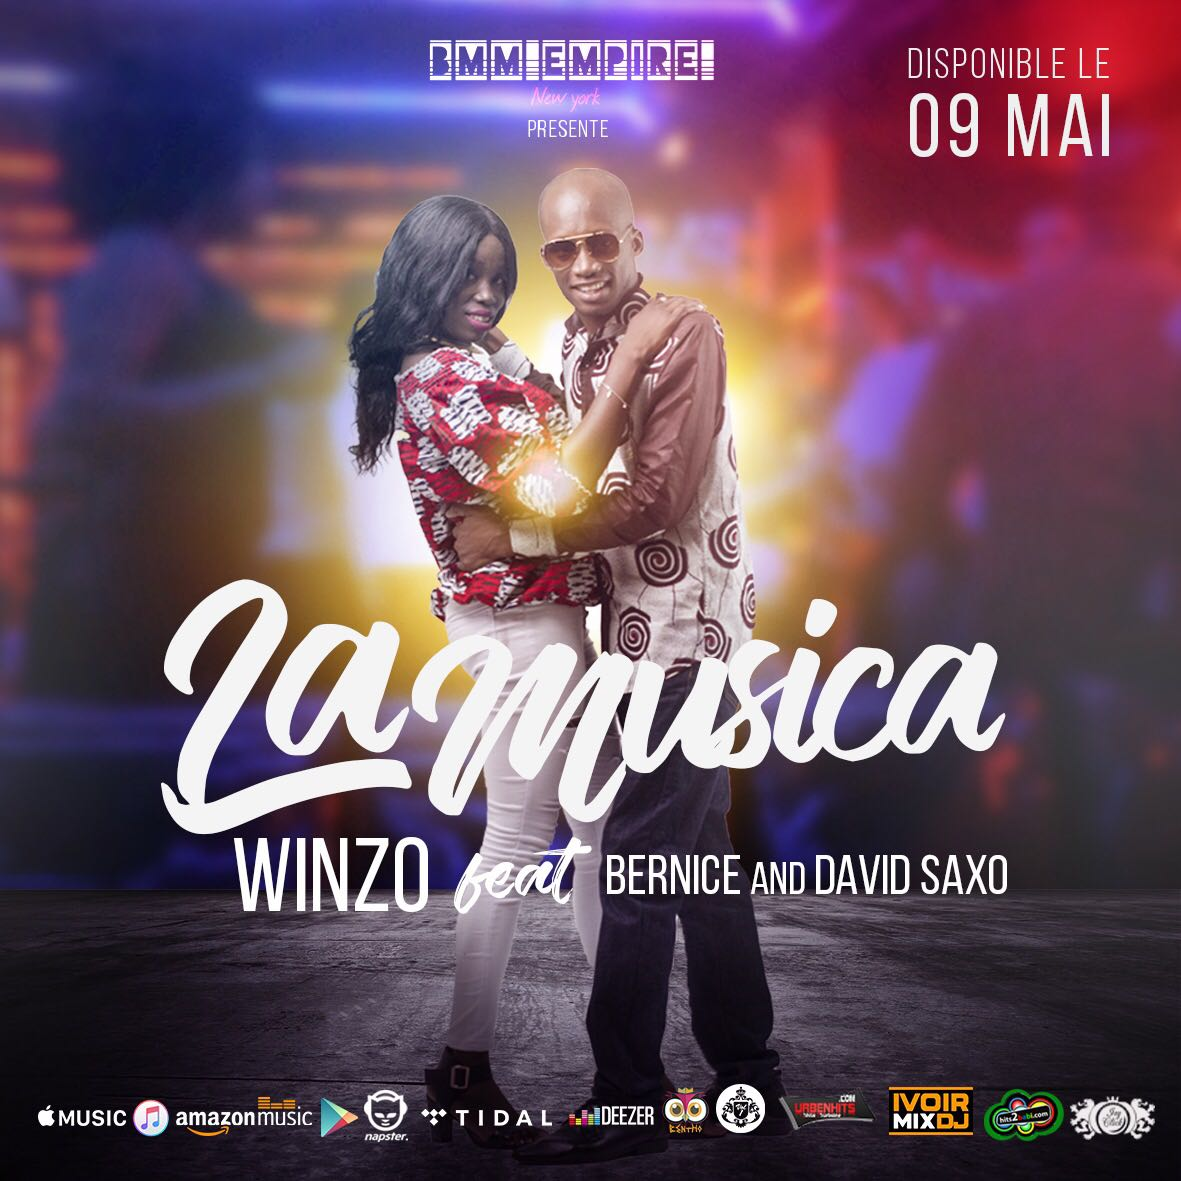 Winzo feat Bernice & David Saxo sortie officielle 09 mai